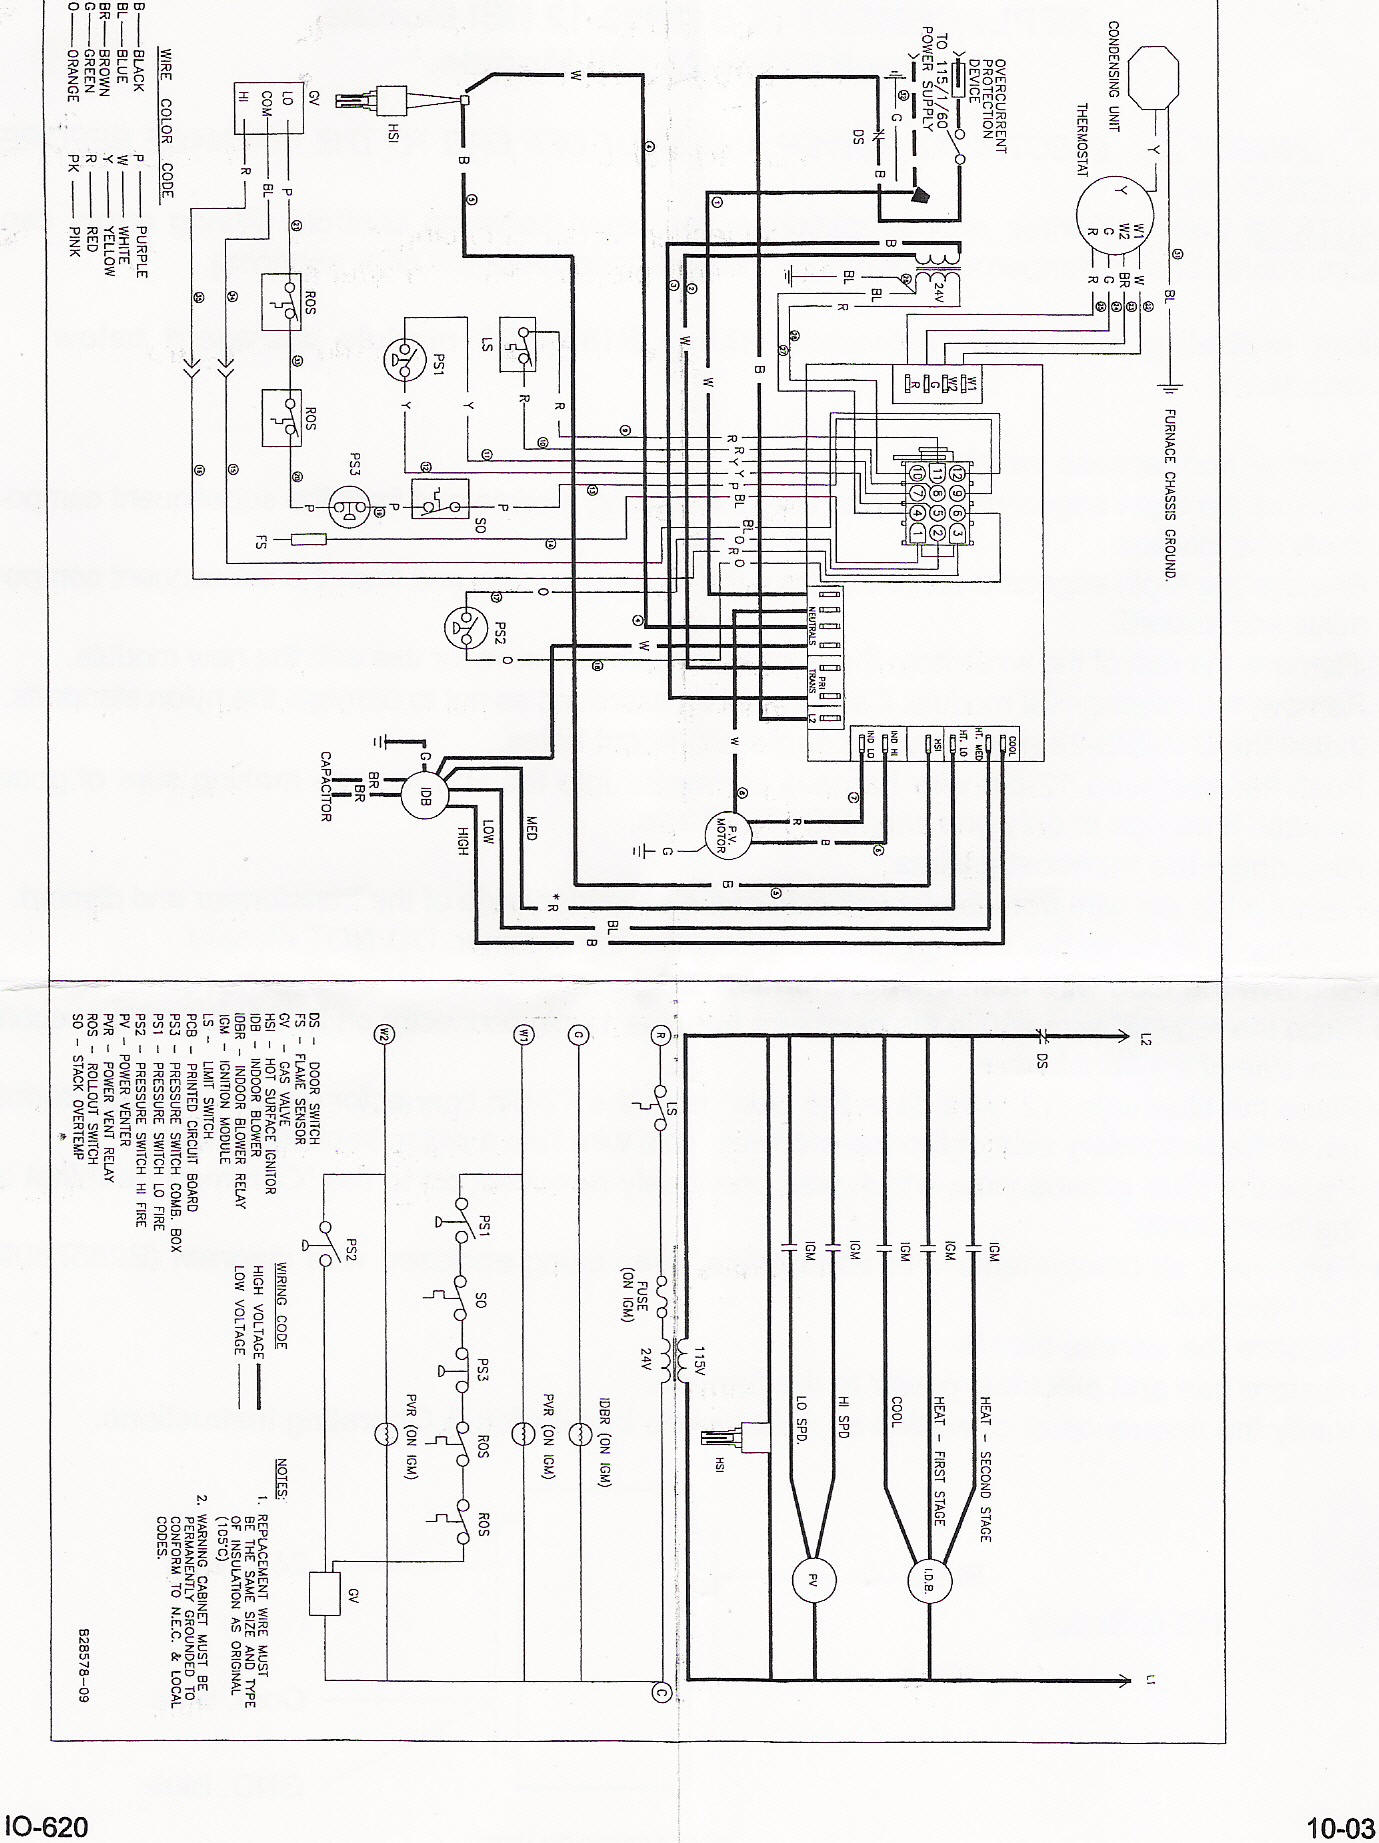 goodma2 instr goodman control board b18099 23 instructions tempstar furnace wiring diagram at bakdesigns.co